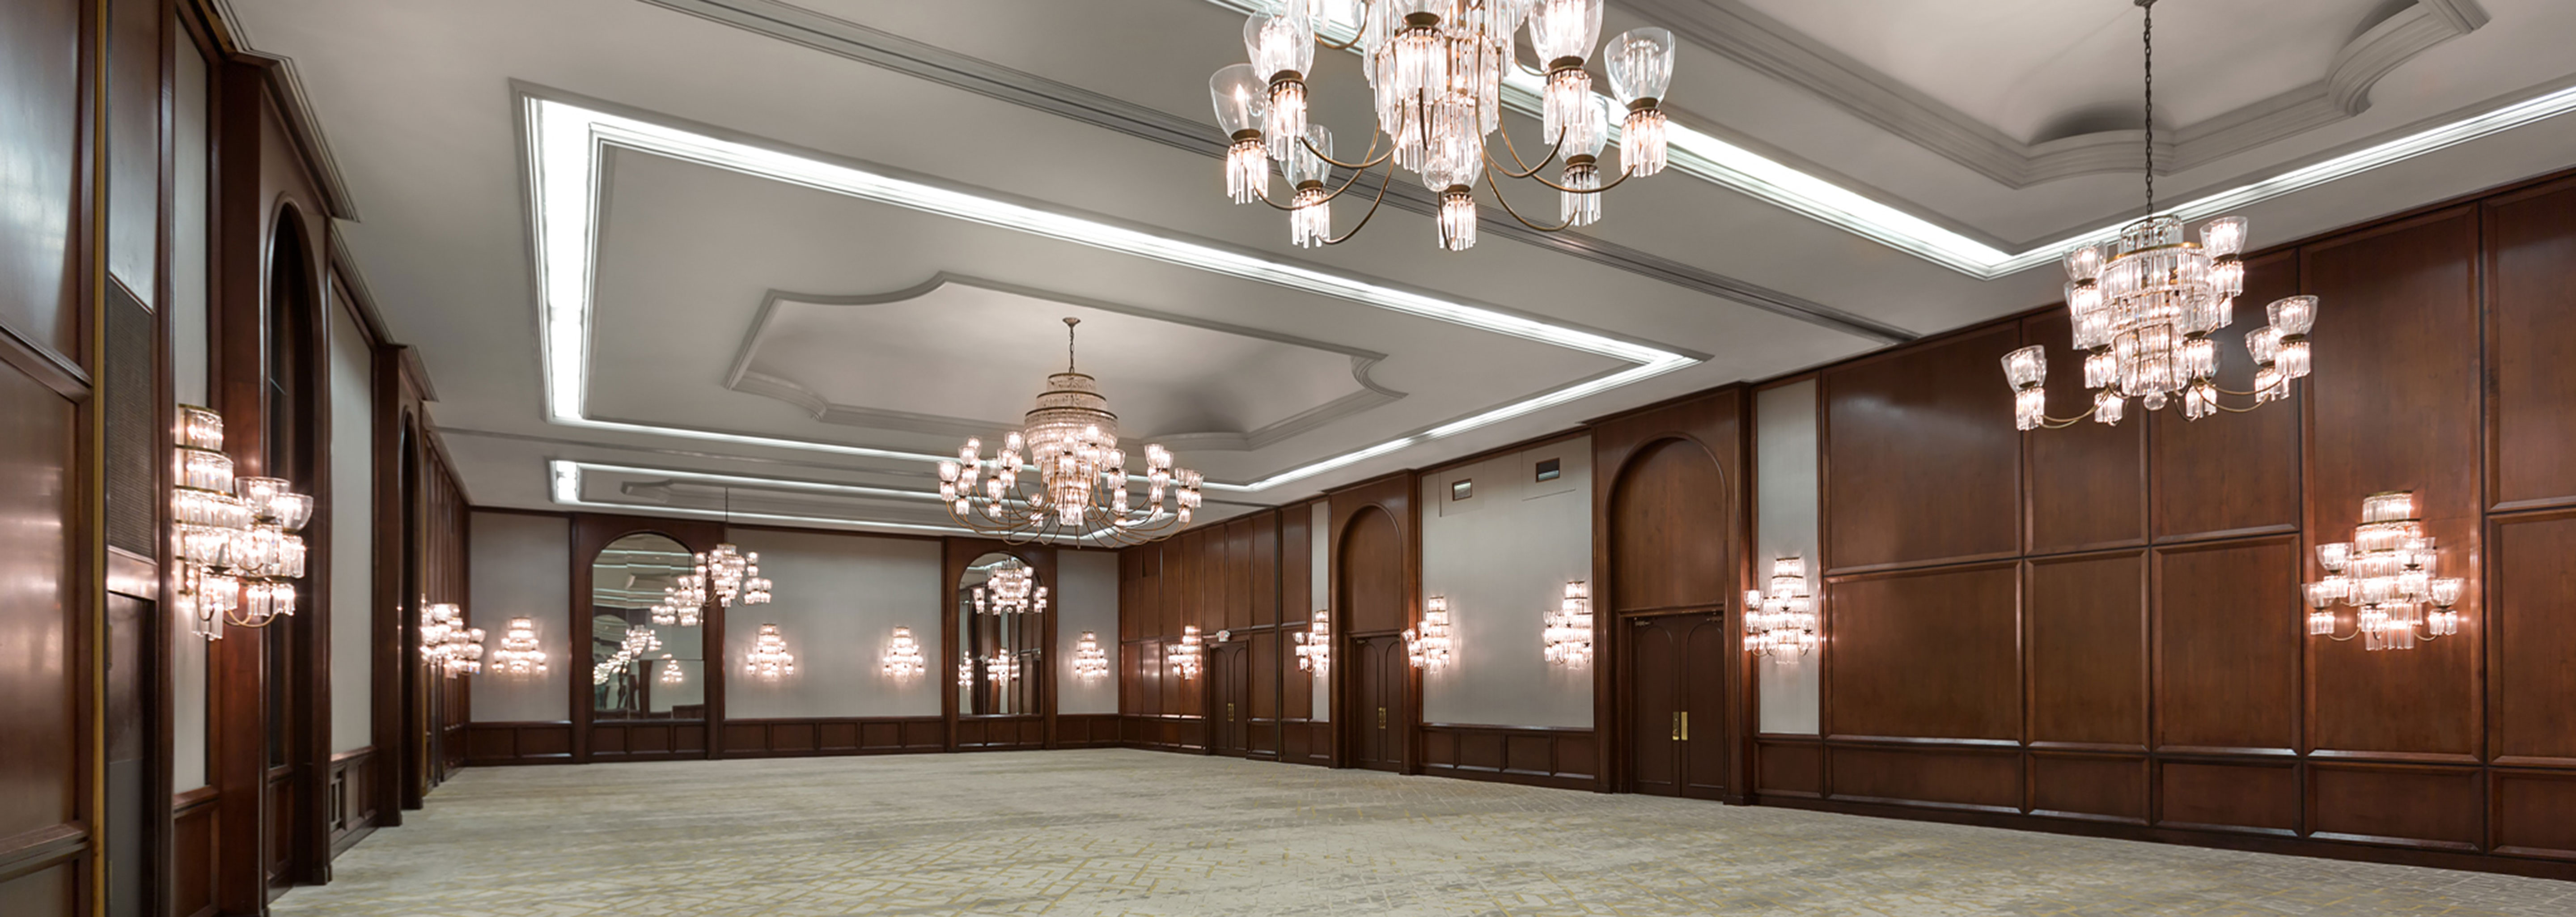 Image of Event Space The DeSoto, 1890, Member of Historic Hotels of America, in Savannah, Georgia, Special Occasions